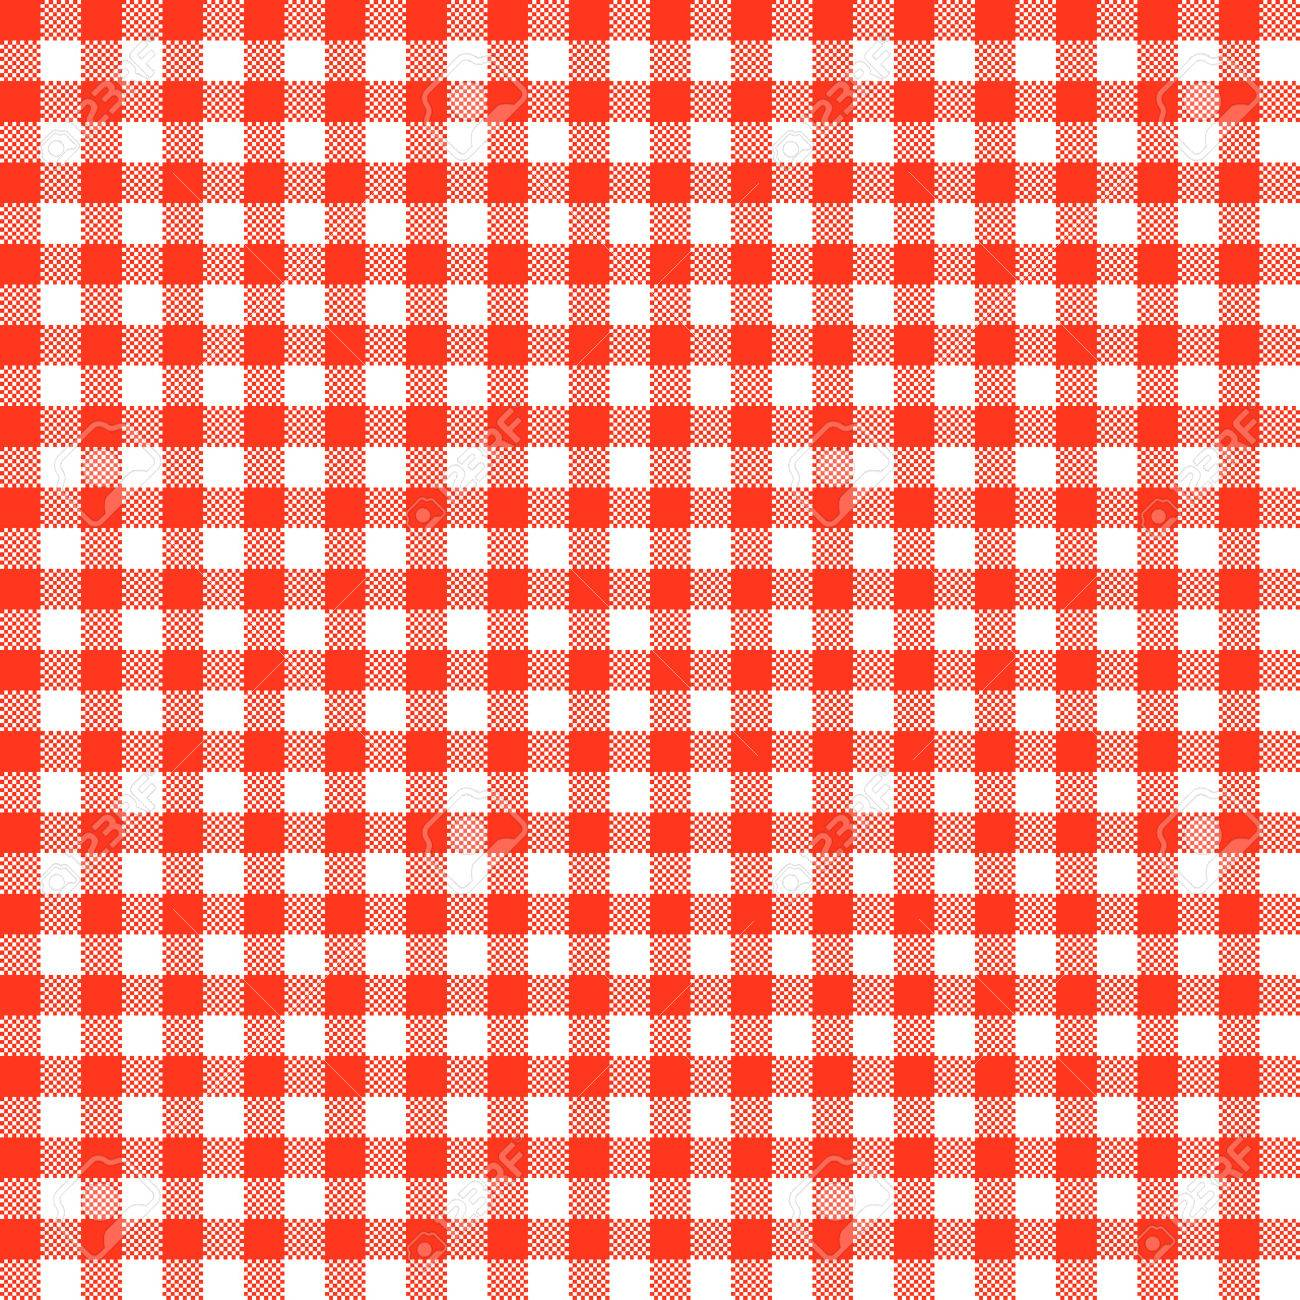 Vector   Vintage Checkered Table Cloth Background Colored Red